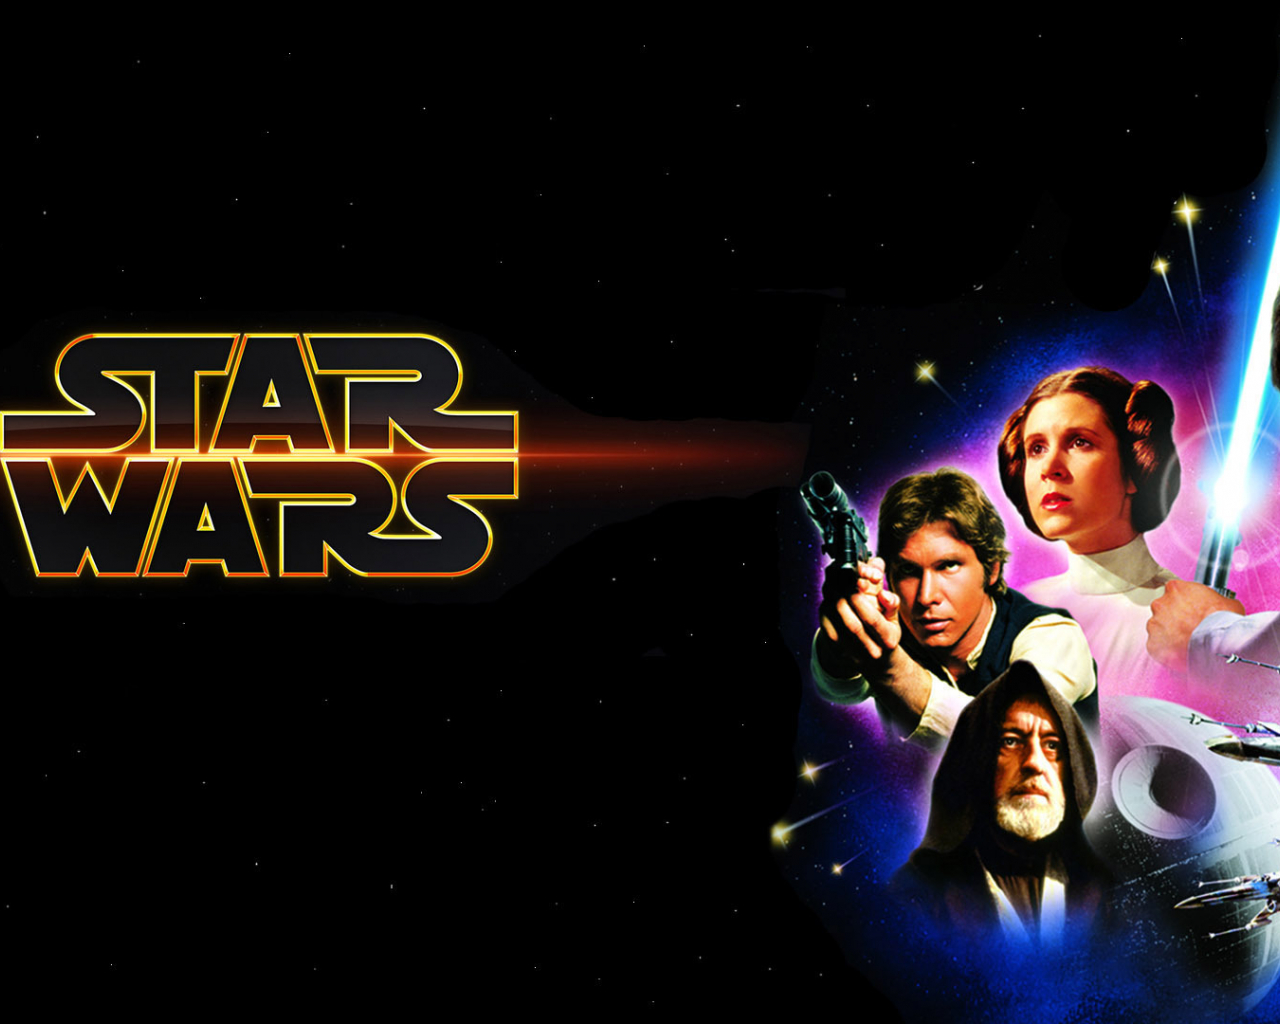 Free Download Star Wars Episode Iv A New Hope Wallpaper 4